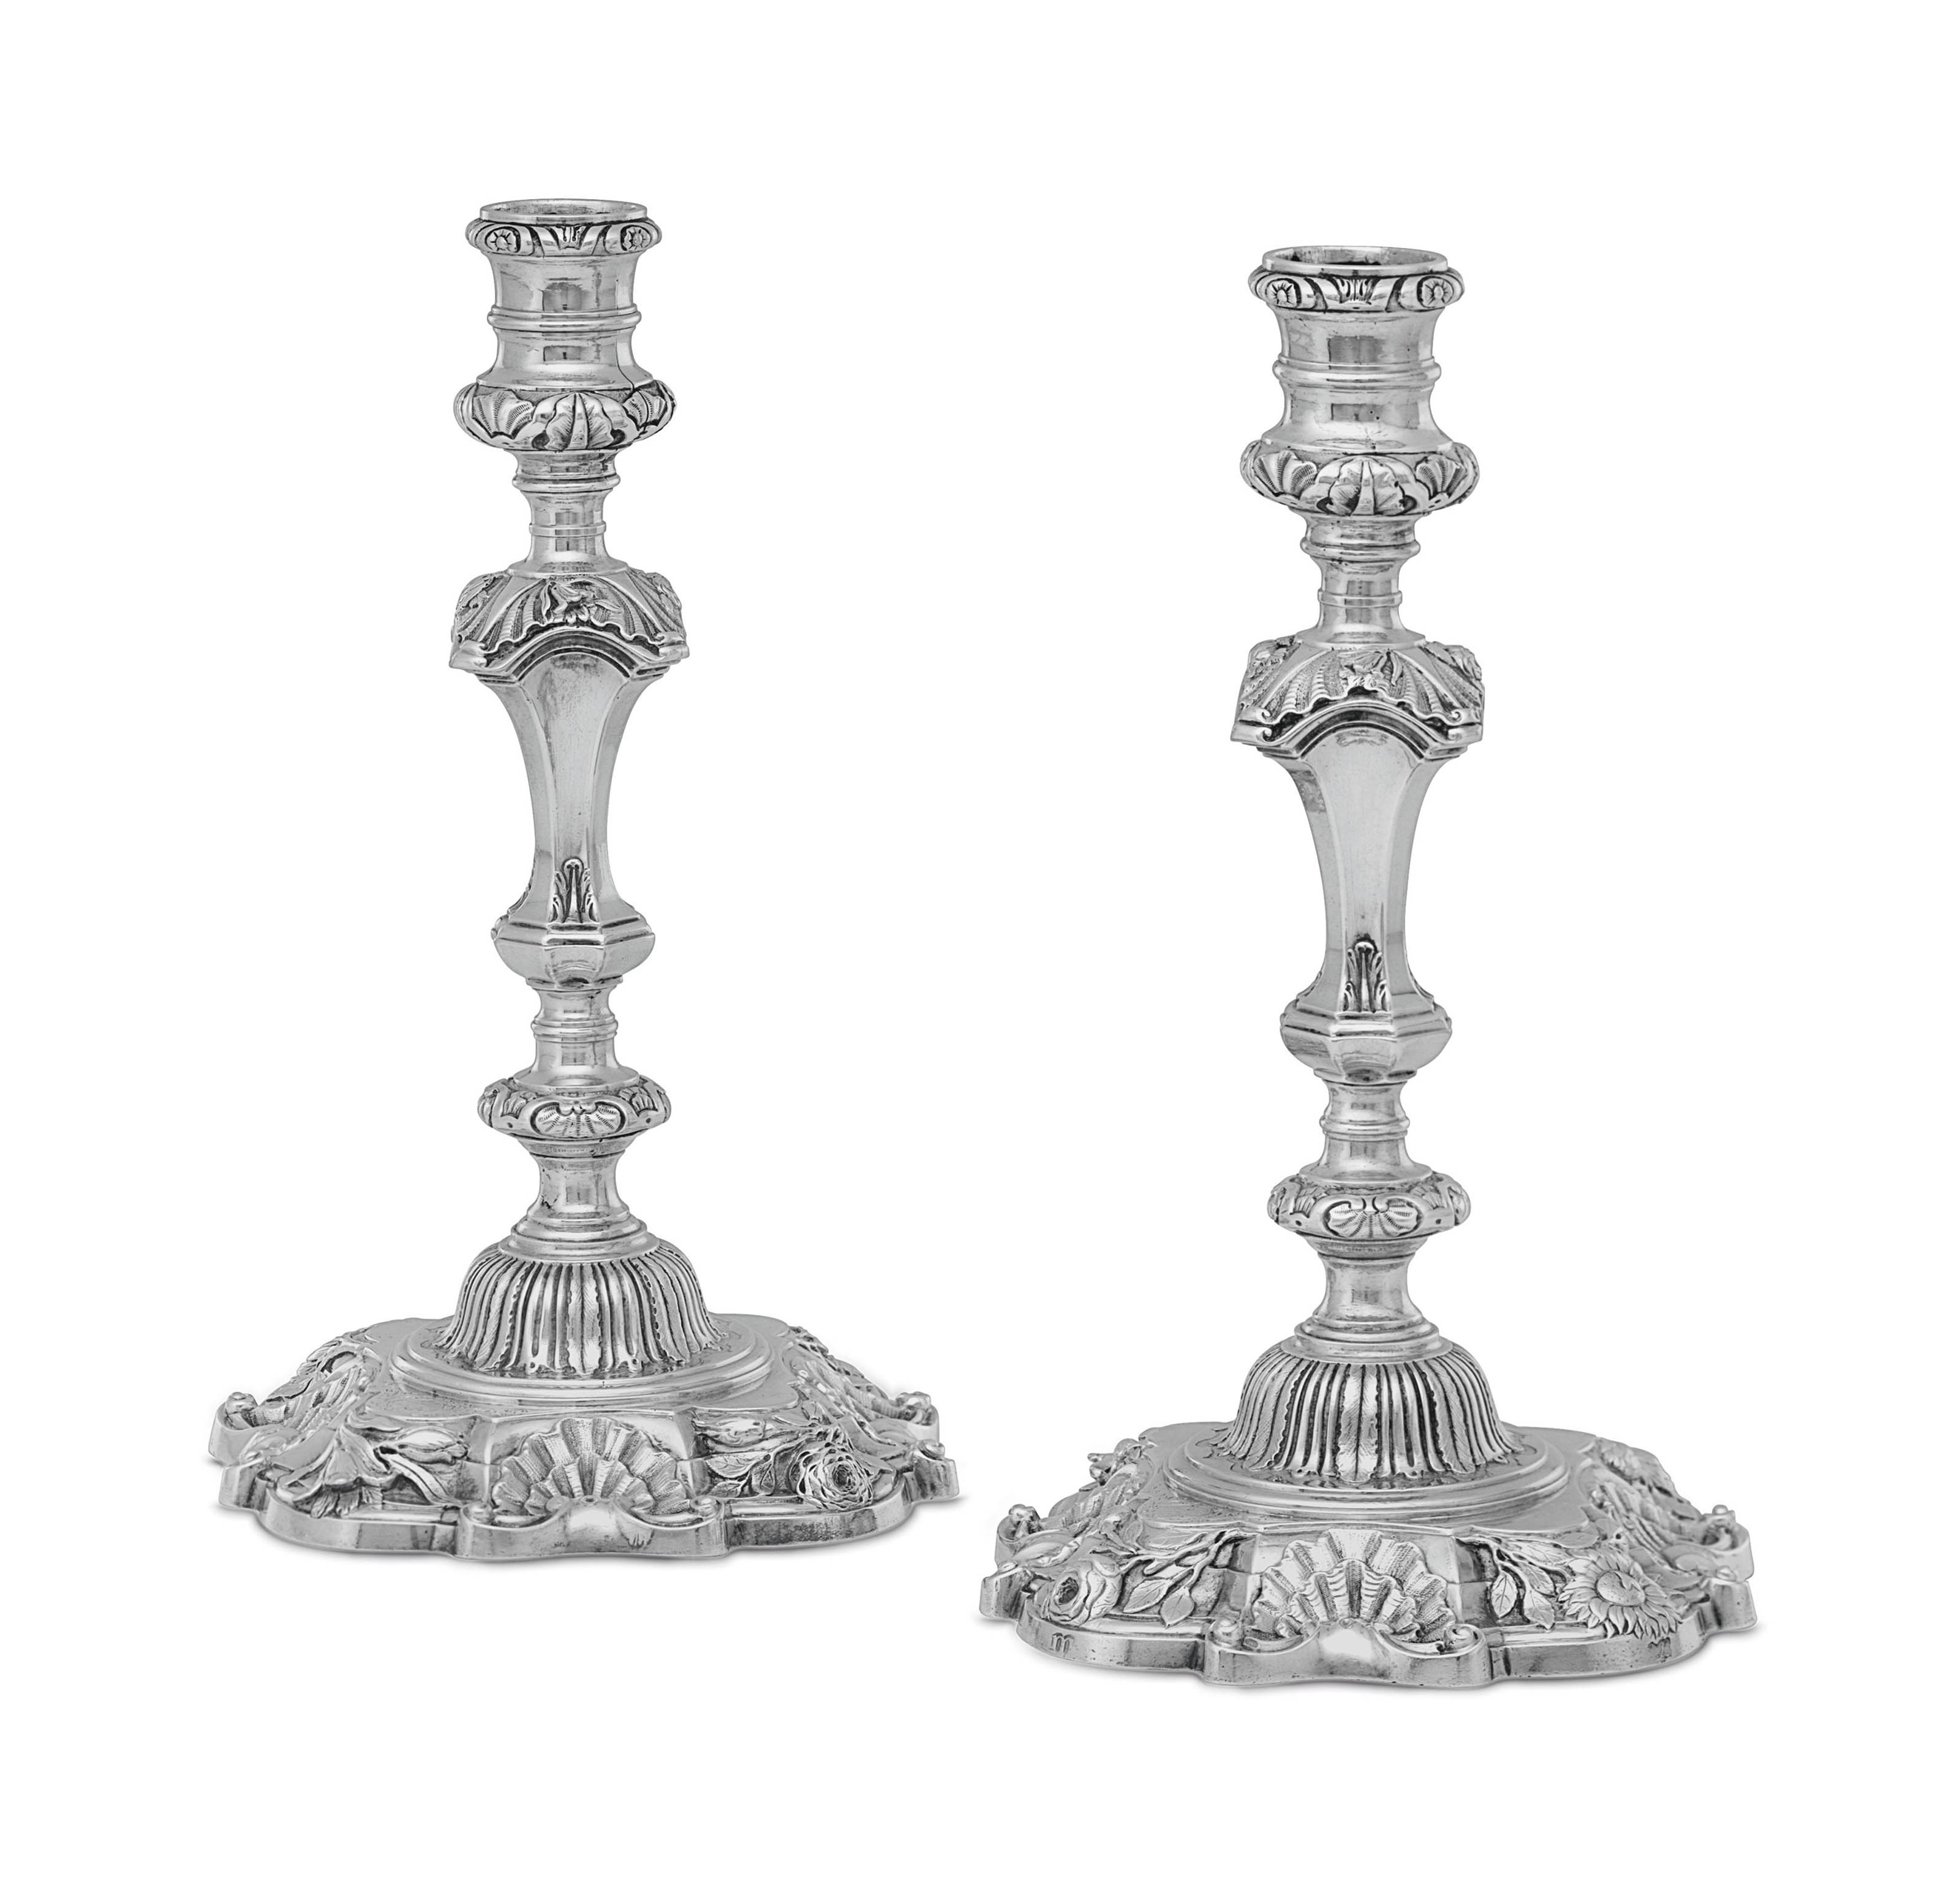 A PAIR OF GEORGE II SILVER CANDLESTICKS